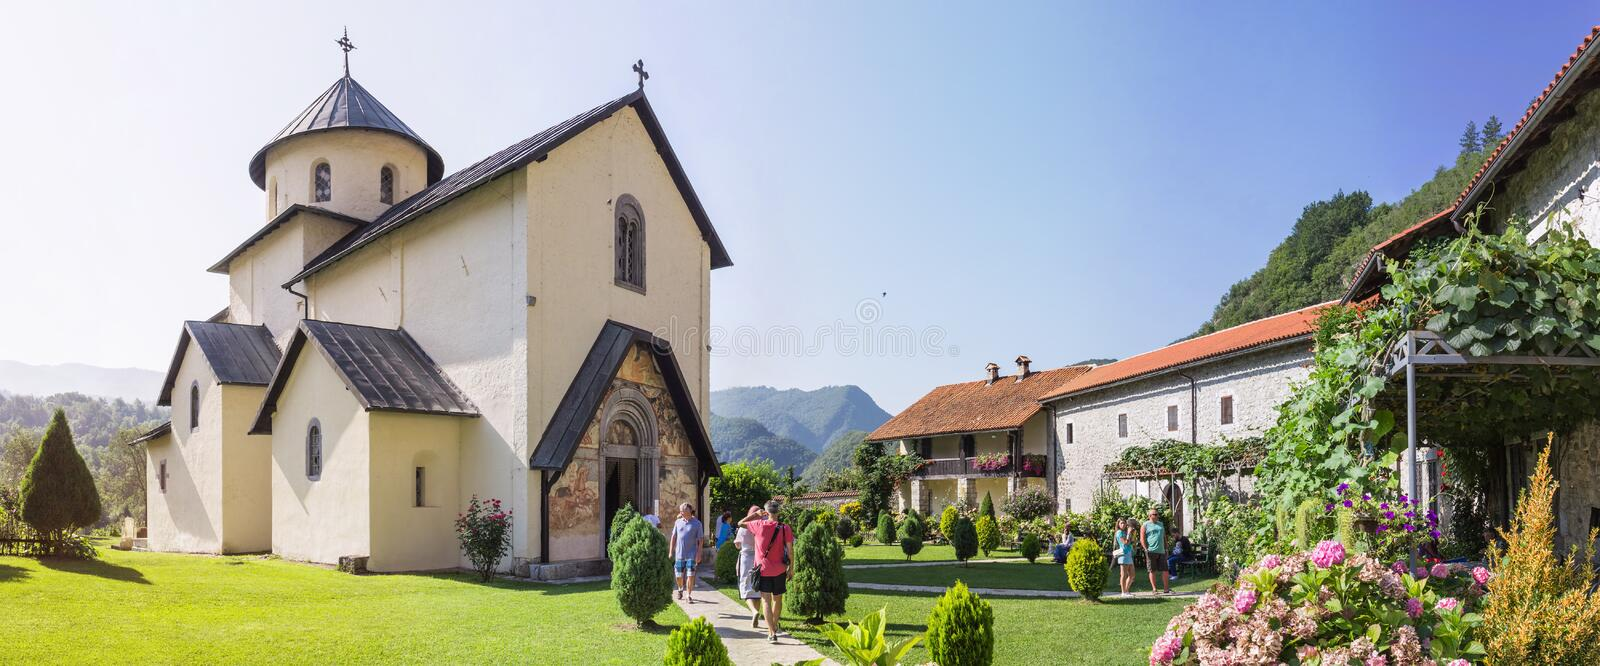 MORACA VALLEY, MONTENEGRO - AUGUST 10, 2014: Moraca Monastery, a Serbian Orthodox monastery located in the valley of the Moraca Ri royalty free stock photography